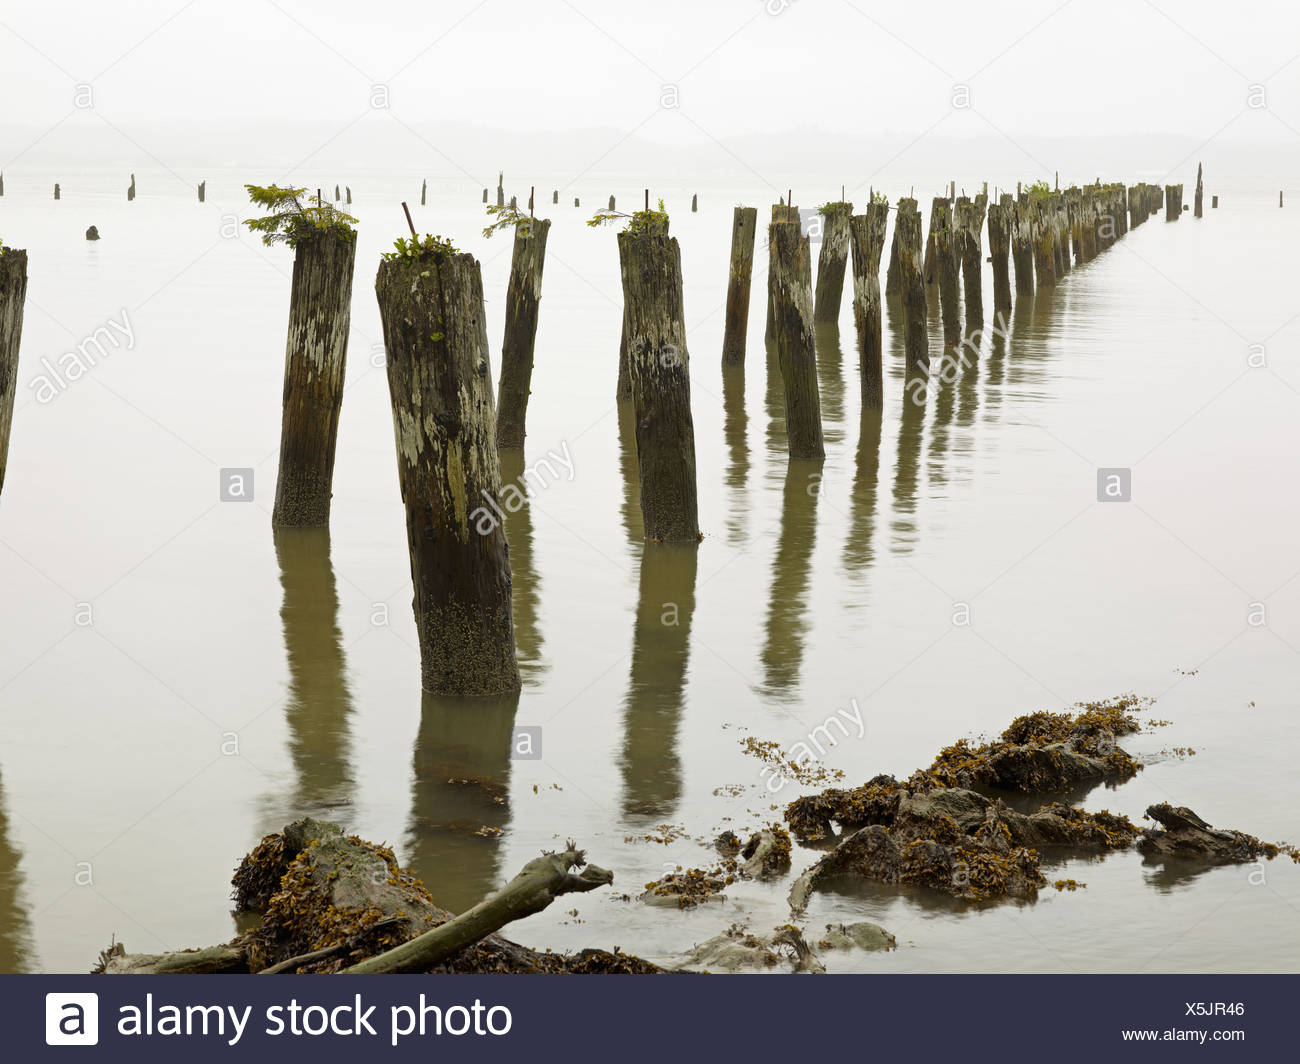 Old pilings standing upright in the shallow water on the beach in Astoria, Oregon, USA - Stock Image